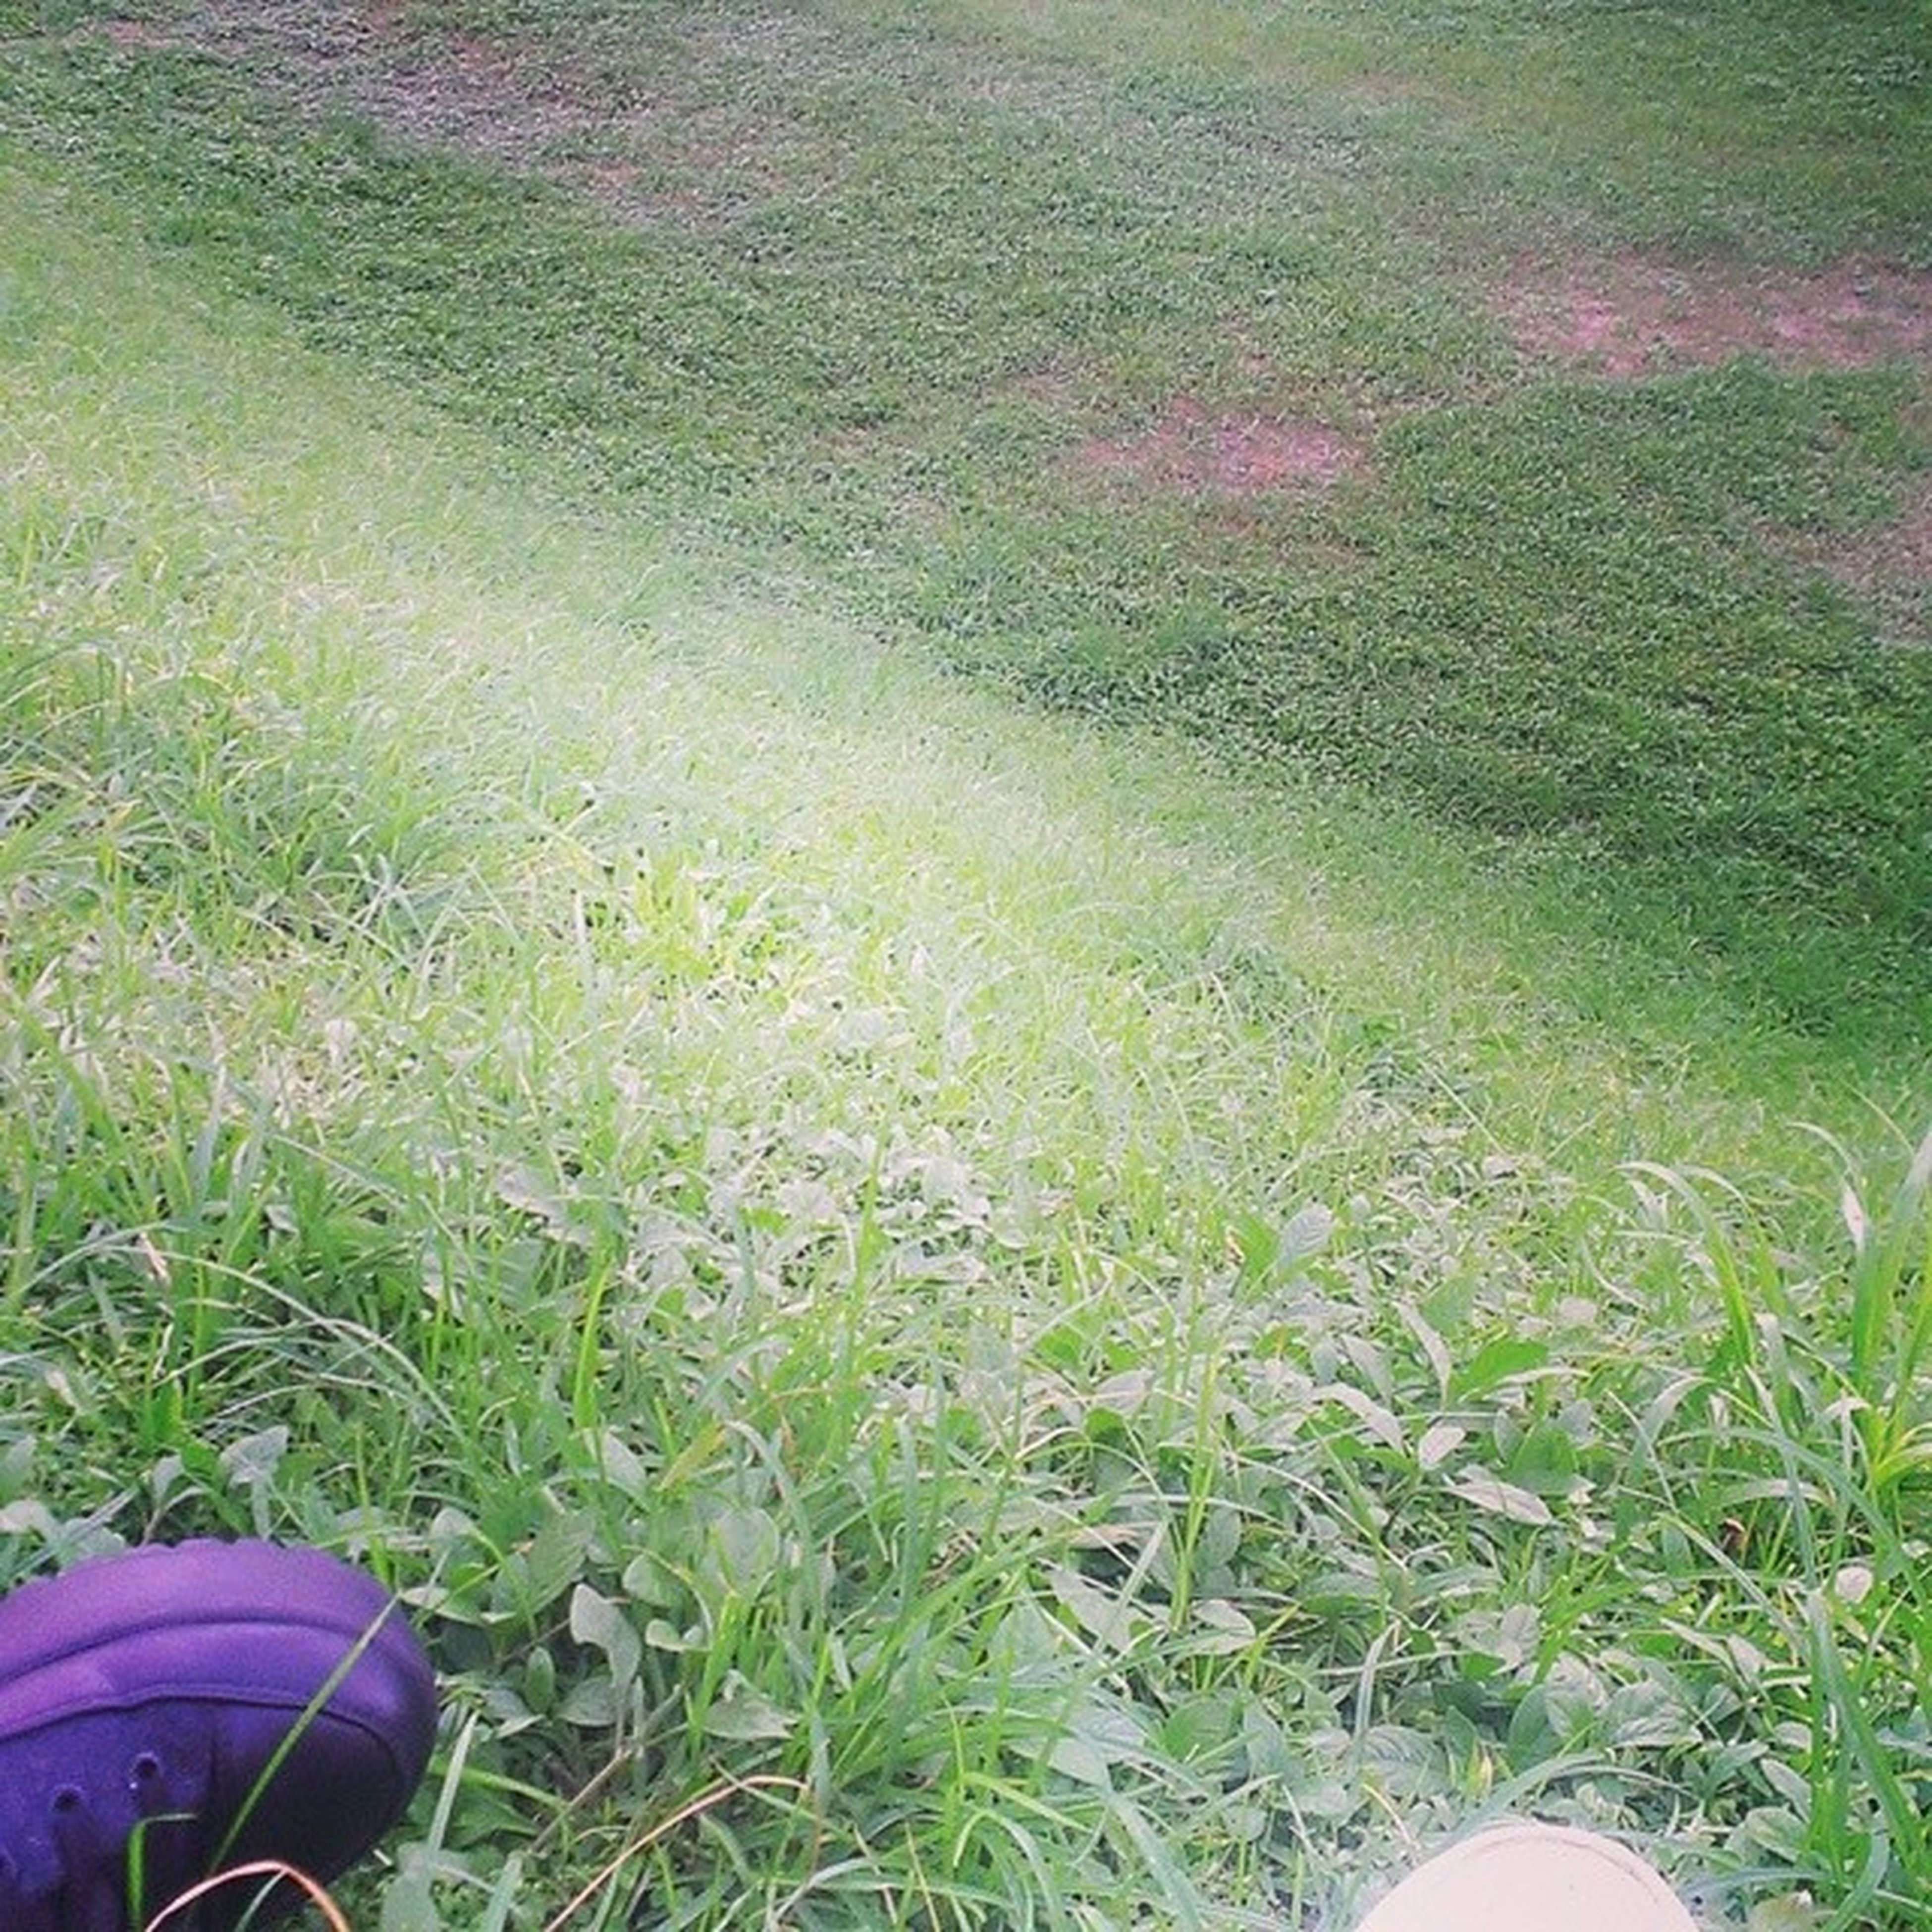 grass, high angle view, field, grassy, green color, growth, plant, nature, day, outdoors, beauty in nature, tranquility, no people, sunlight, shoe, lawn, transportation, green, low section, part of